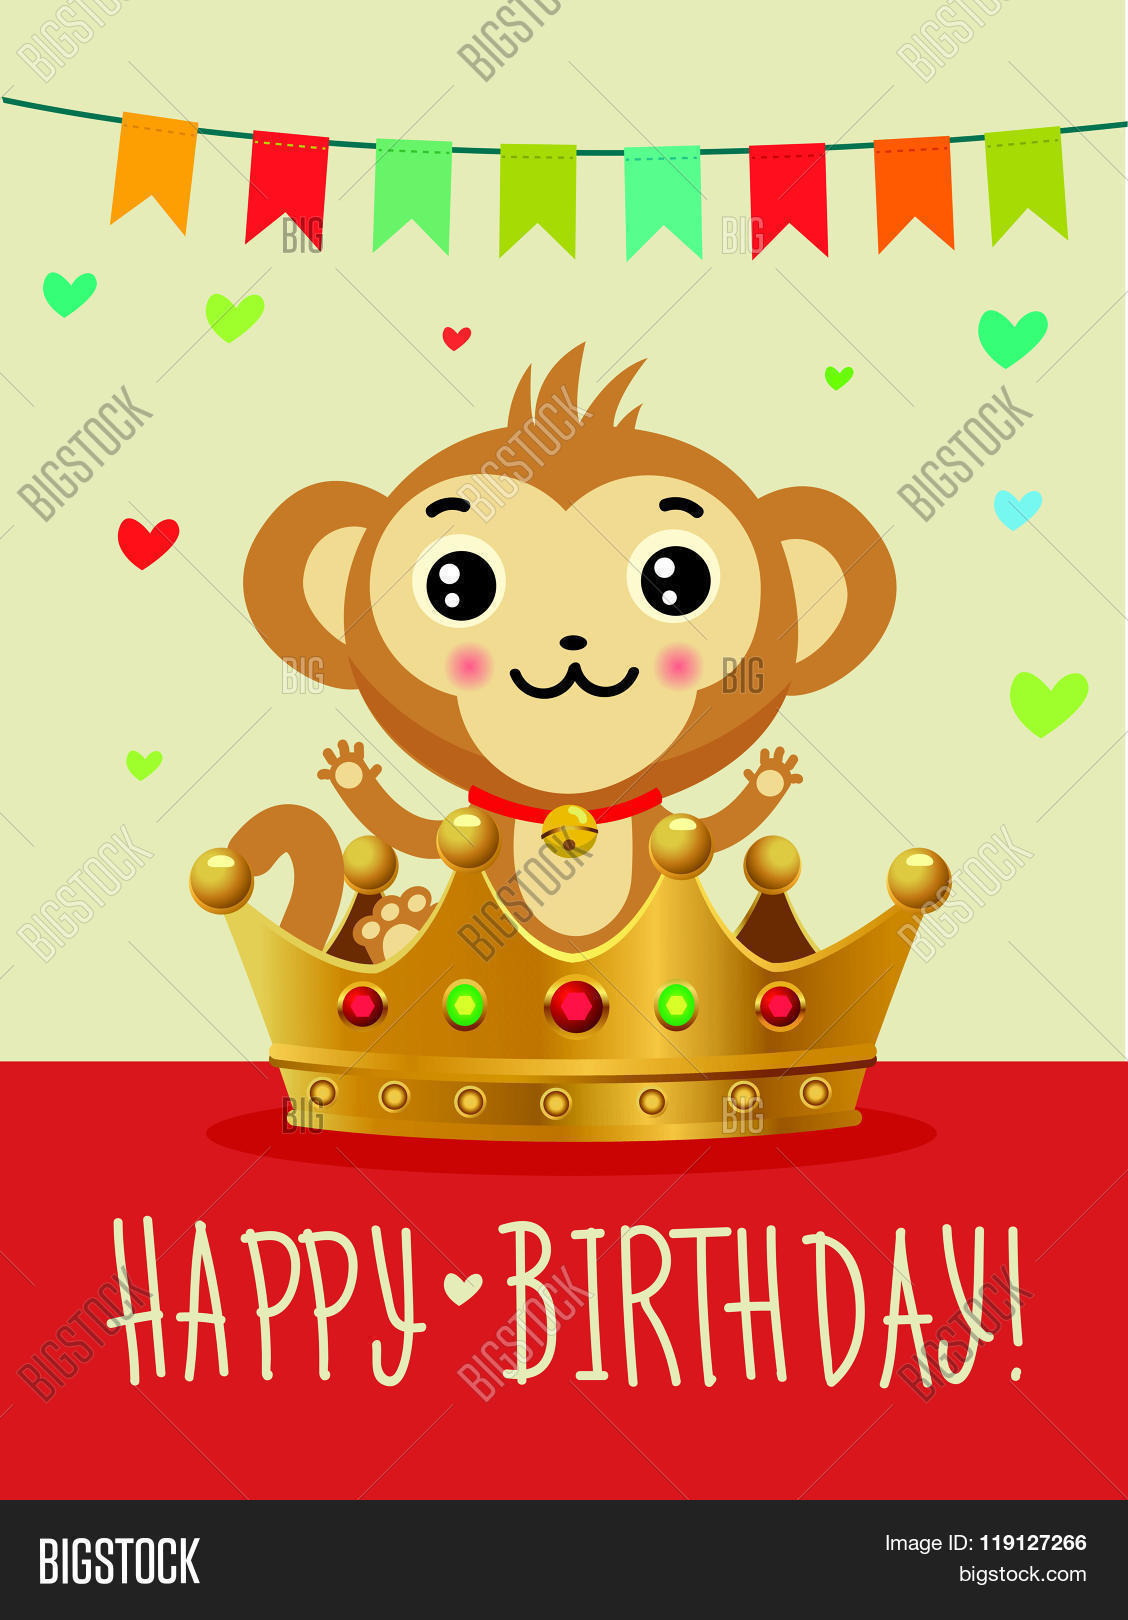 Happy birthday you vector photo free trial bigstock happy birthday to you wish humour friendship greeting card birthday image m4hsunfo